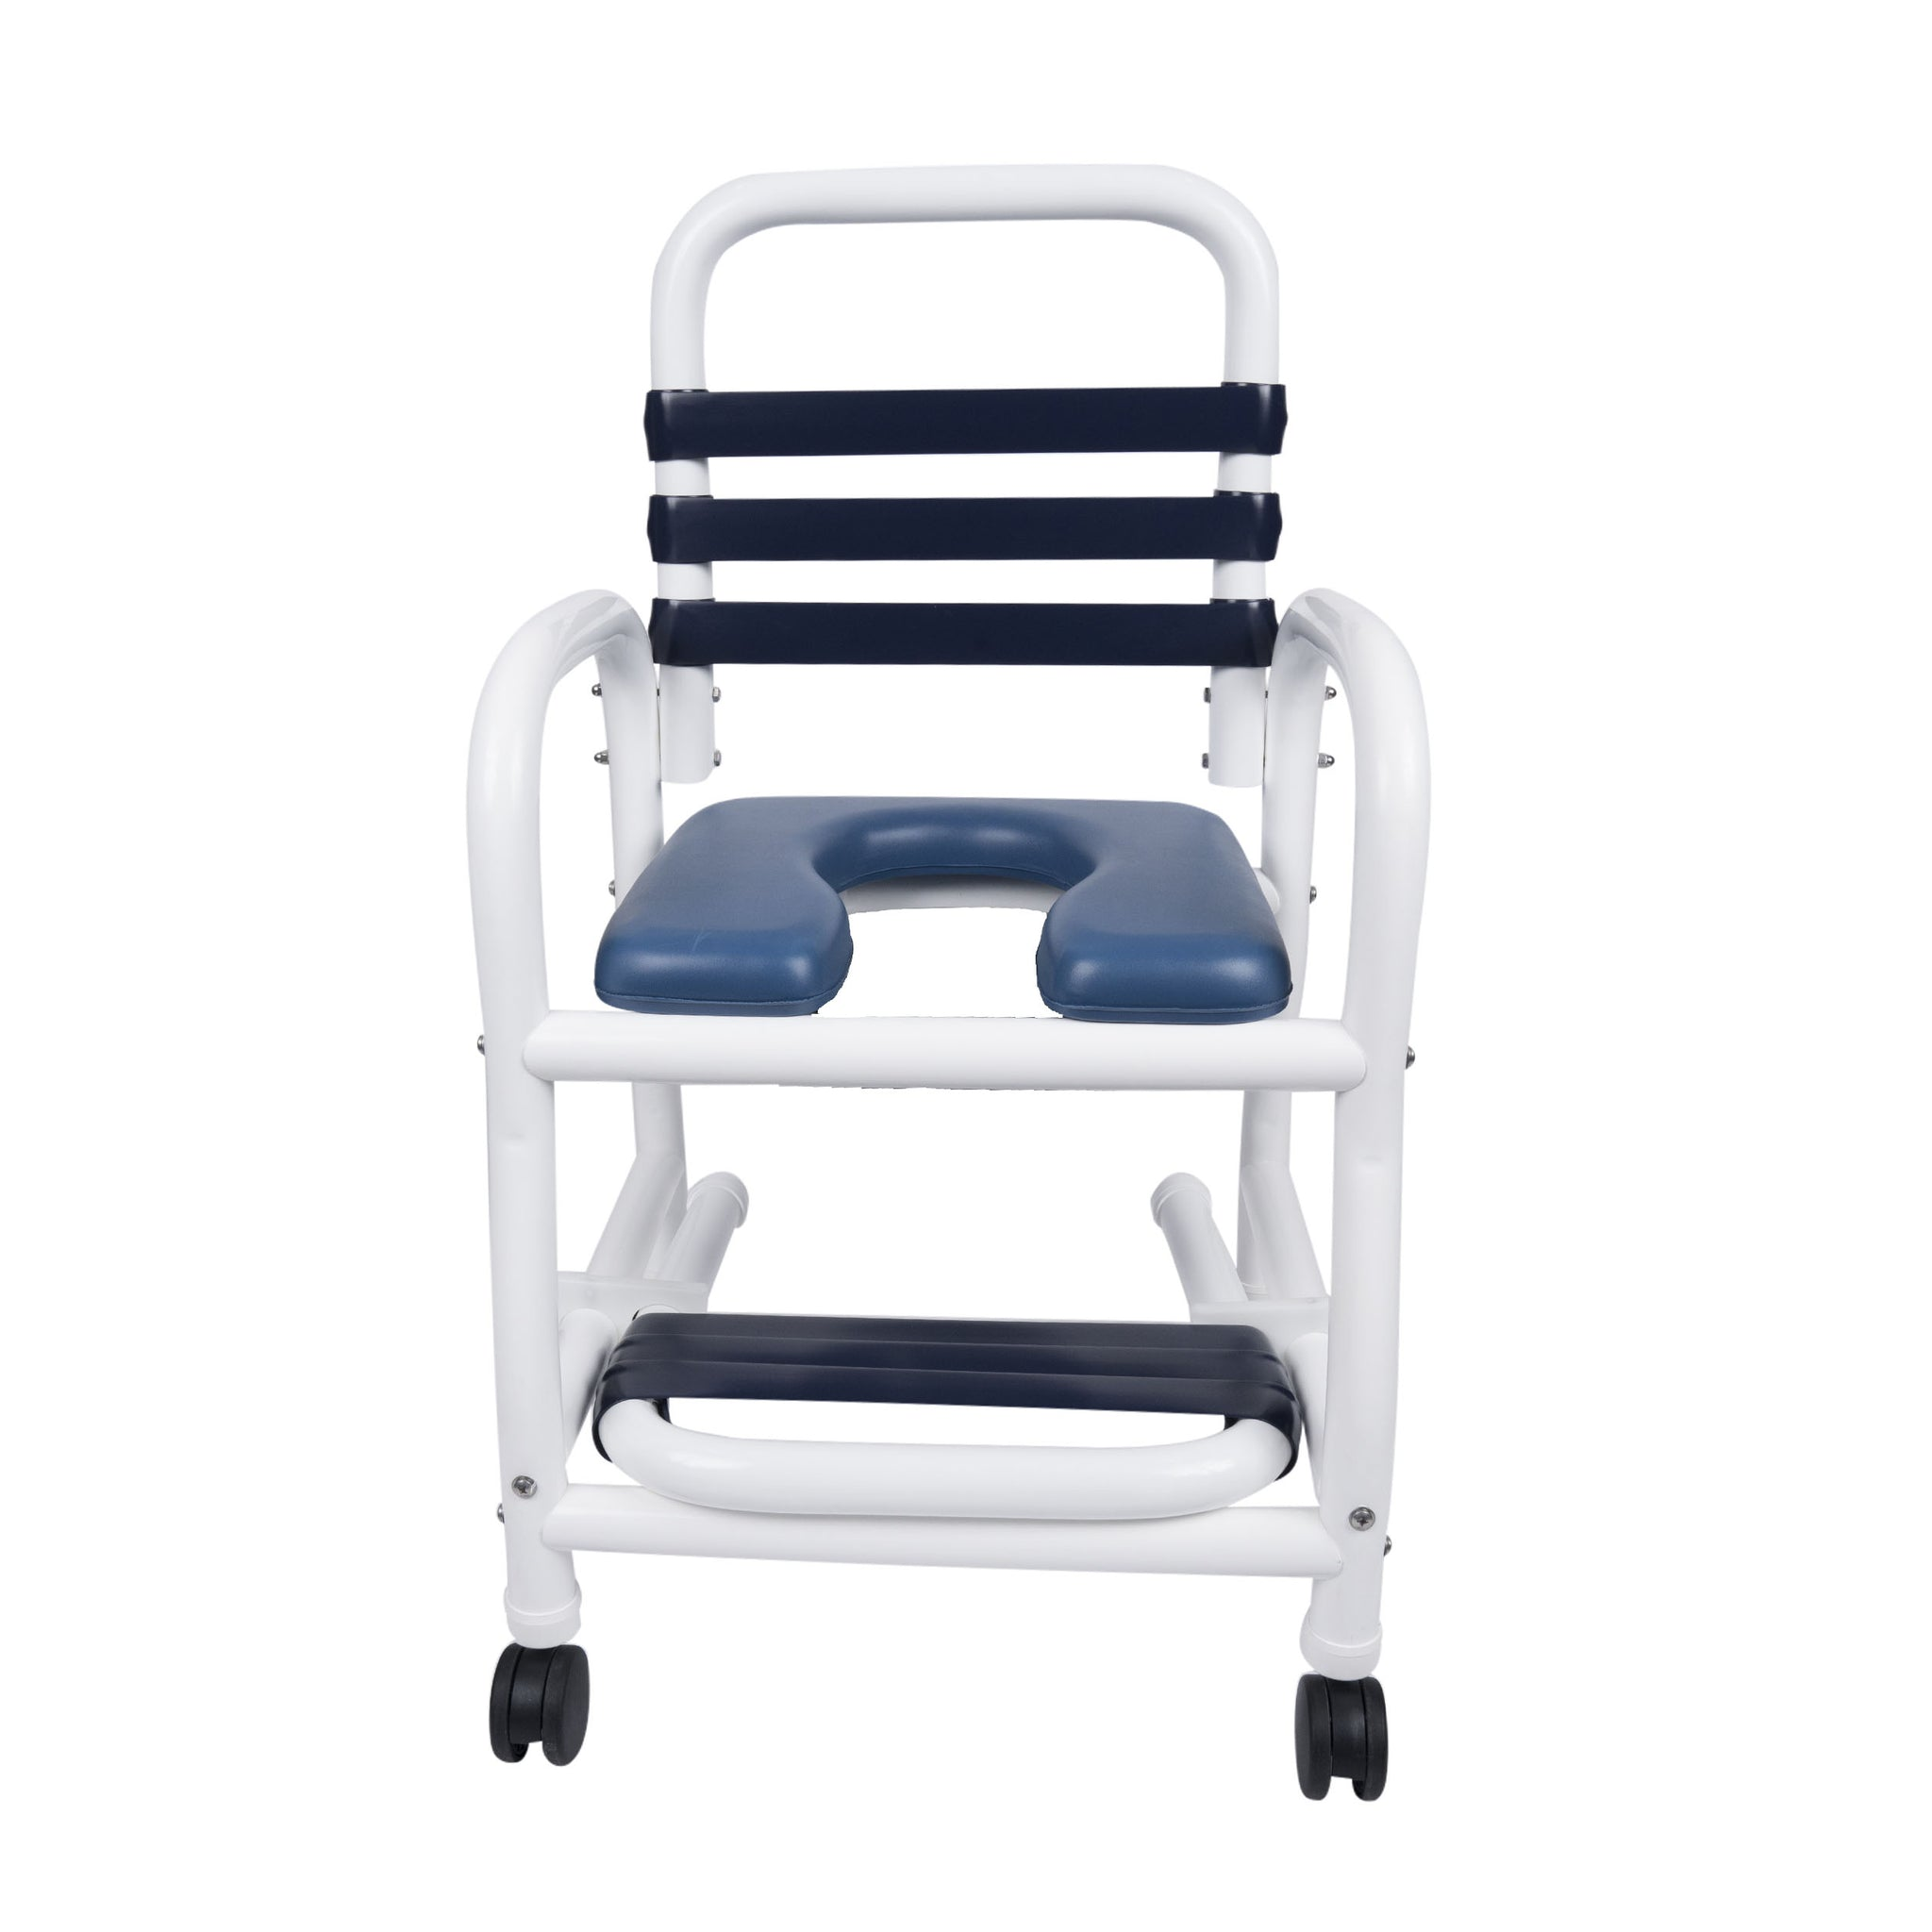 Mor-Medical Deluxe New Era 3-in-1 Infection Control Shower Commode Chair